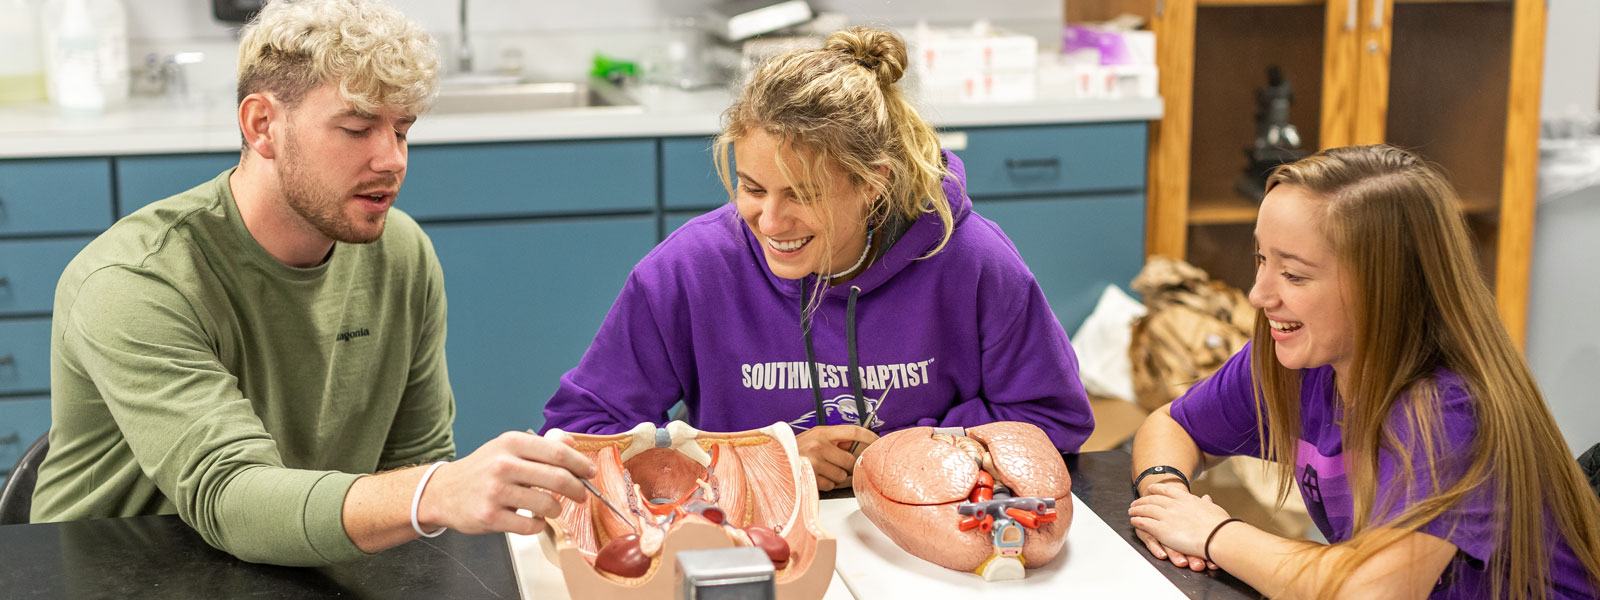 biology professor and students examine molecule example in lab